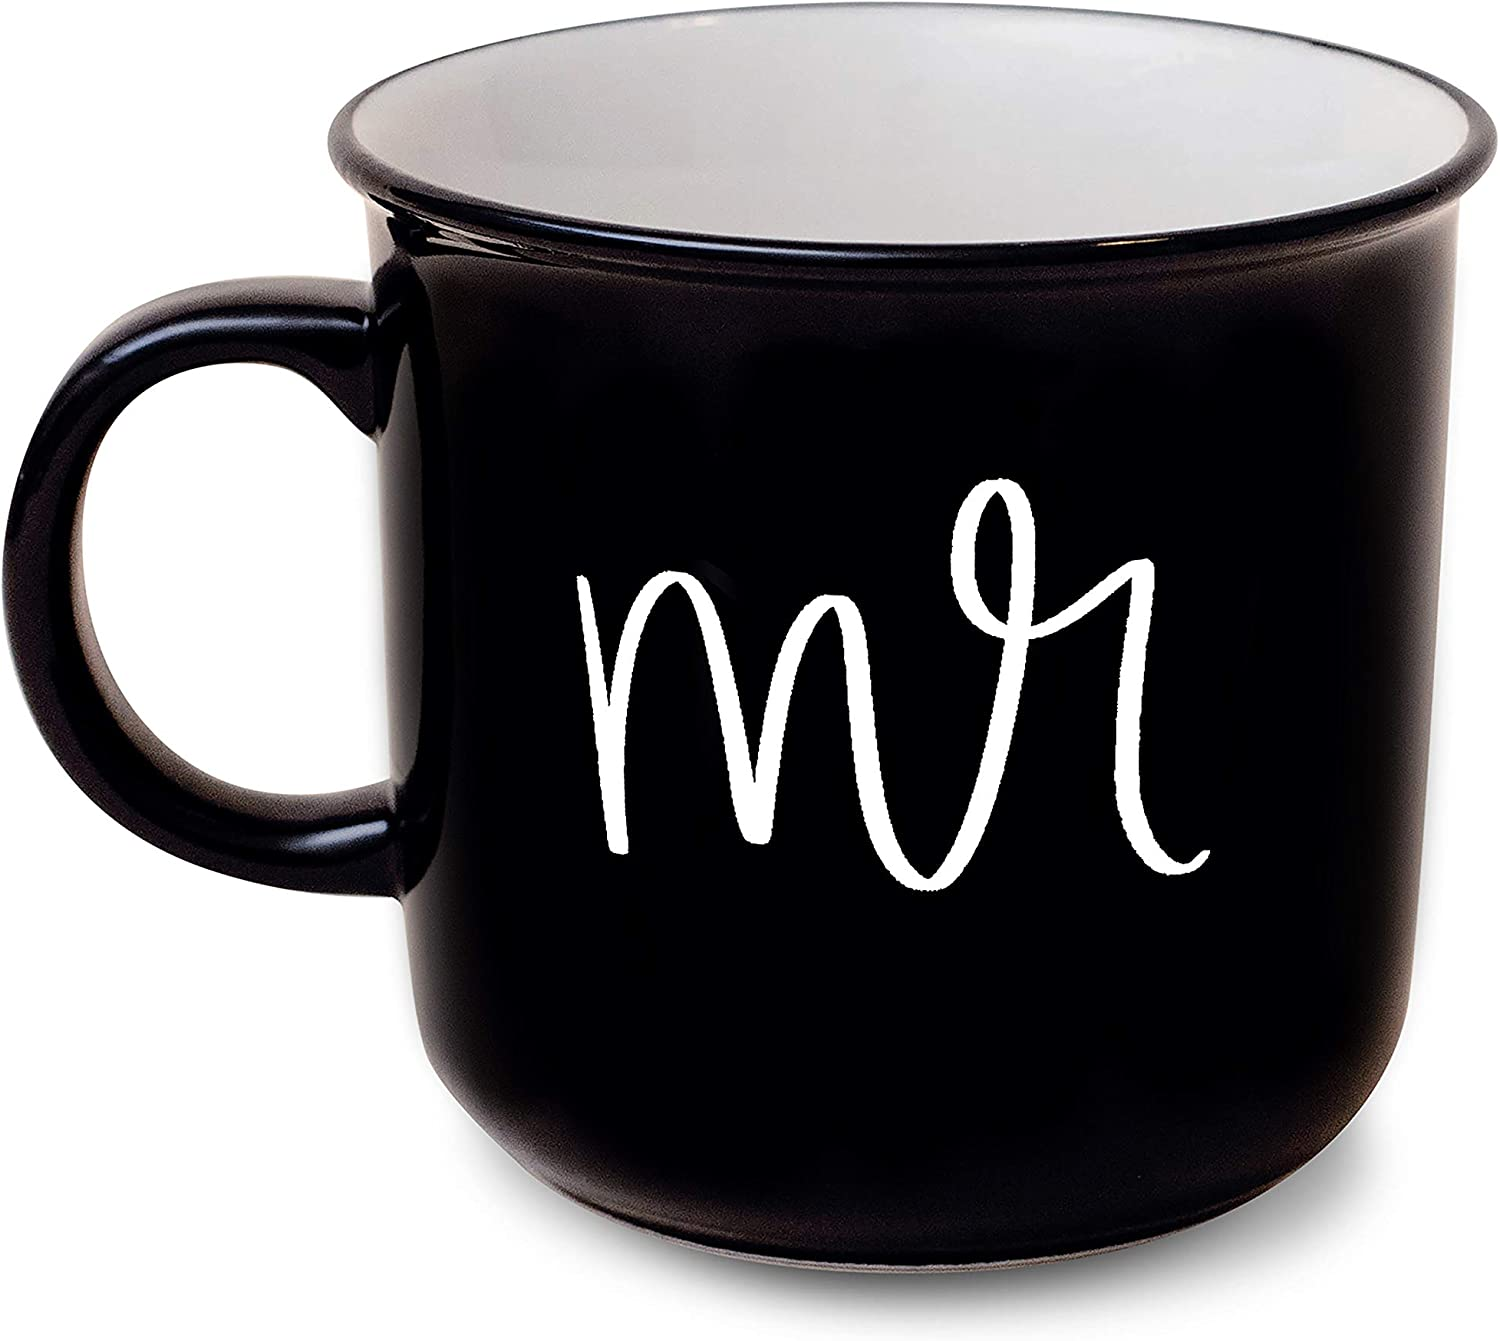 Sweet Water Decor Cute Coffee His and Her Mugs for Married Couples | 14oz Campfire Style Mug for Brides & Grooms | Great for Weddings, Engagements, Bridal Showers (Mr.)